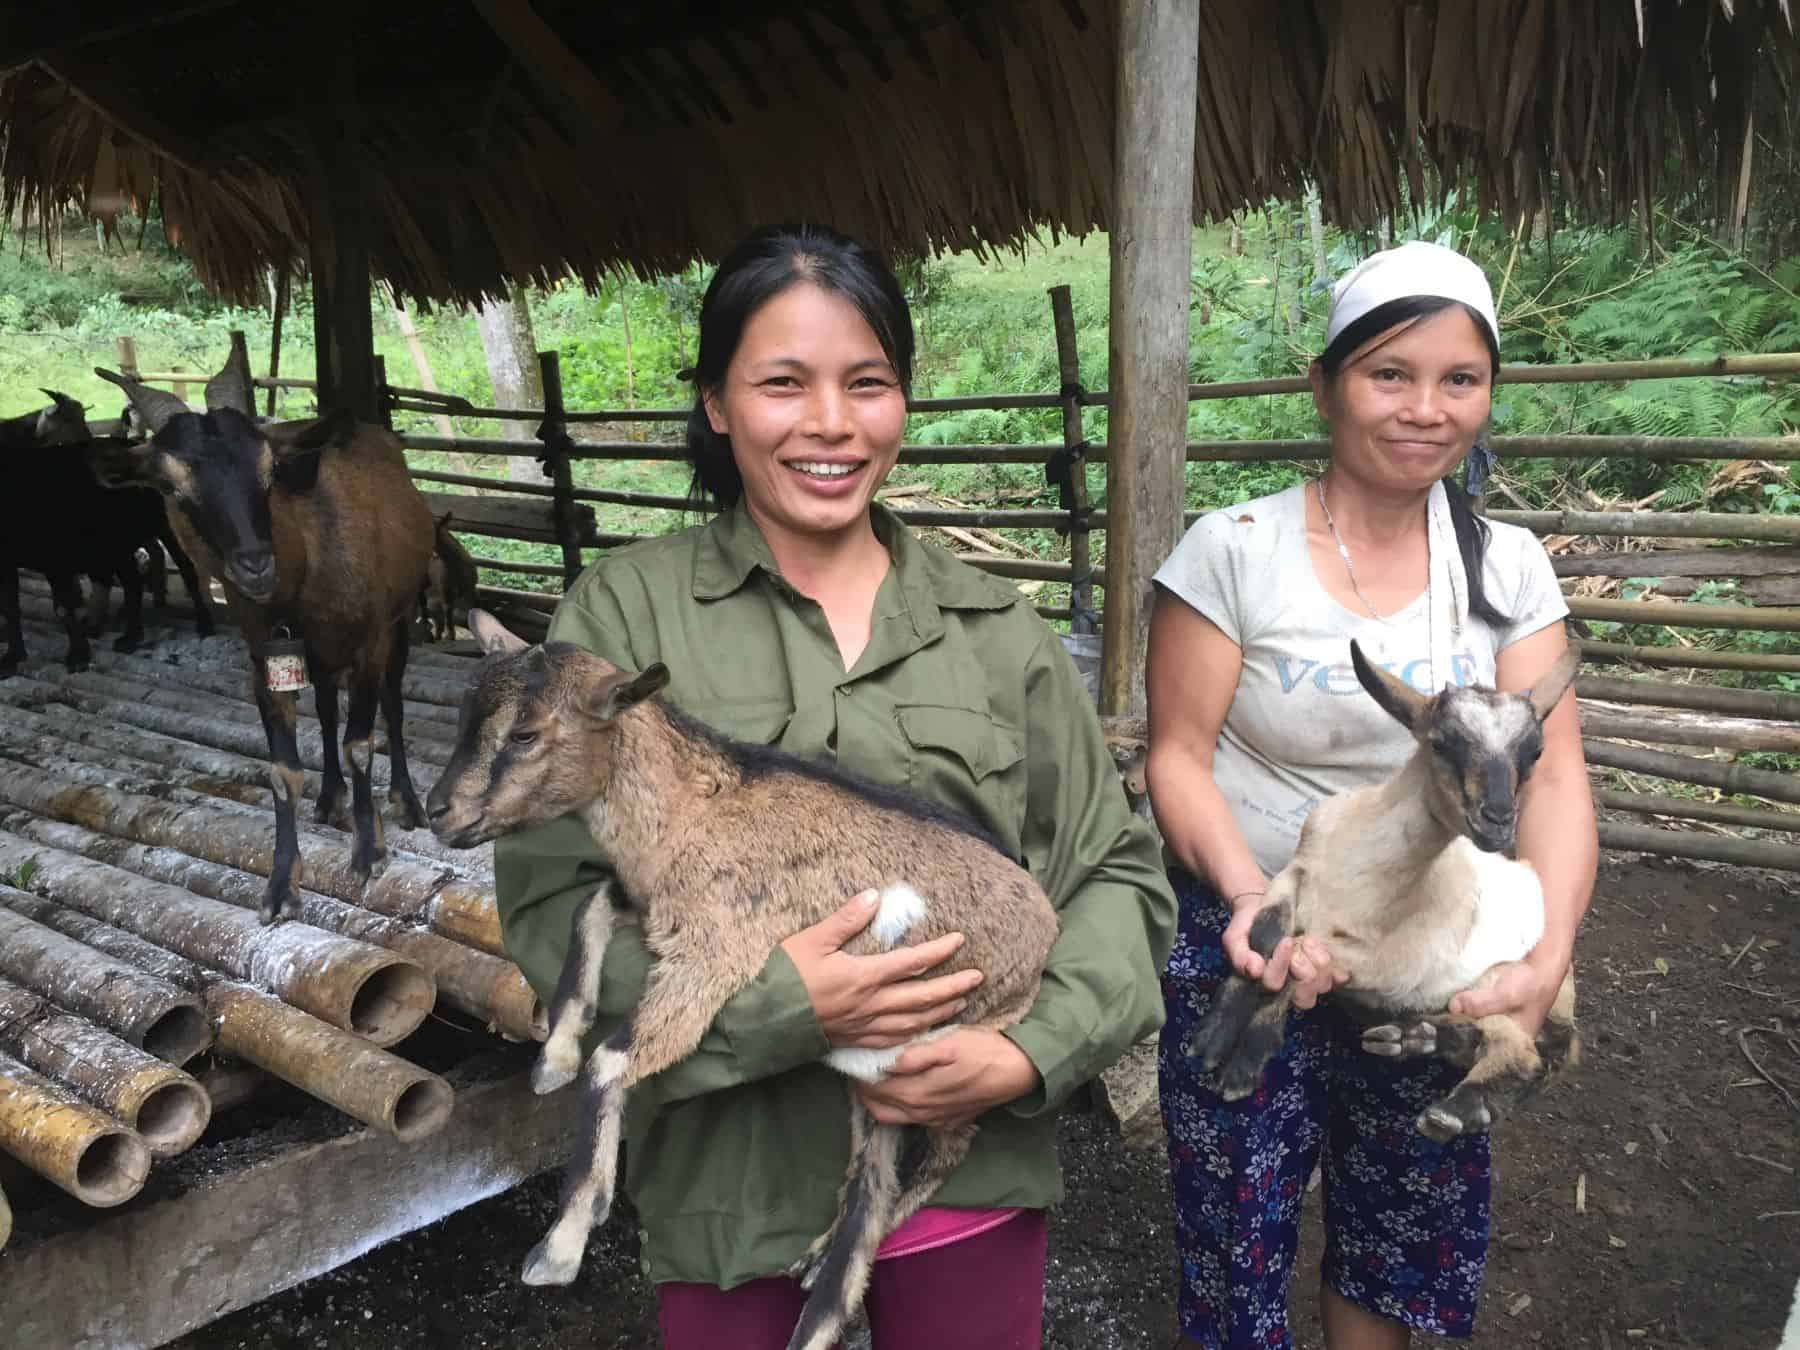 Goats provide families with a sustainable way to provide food.